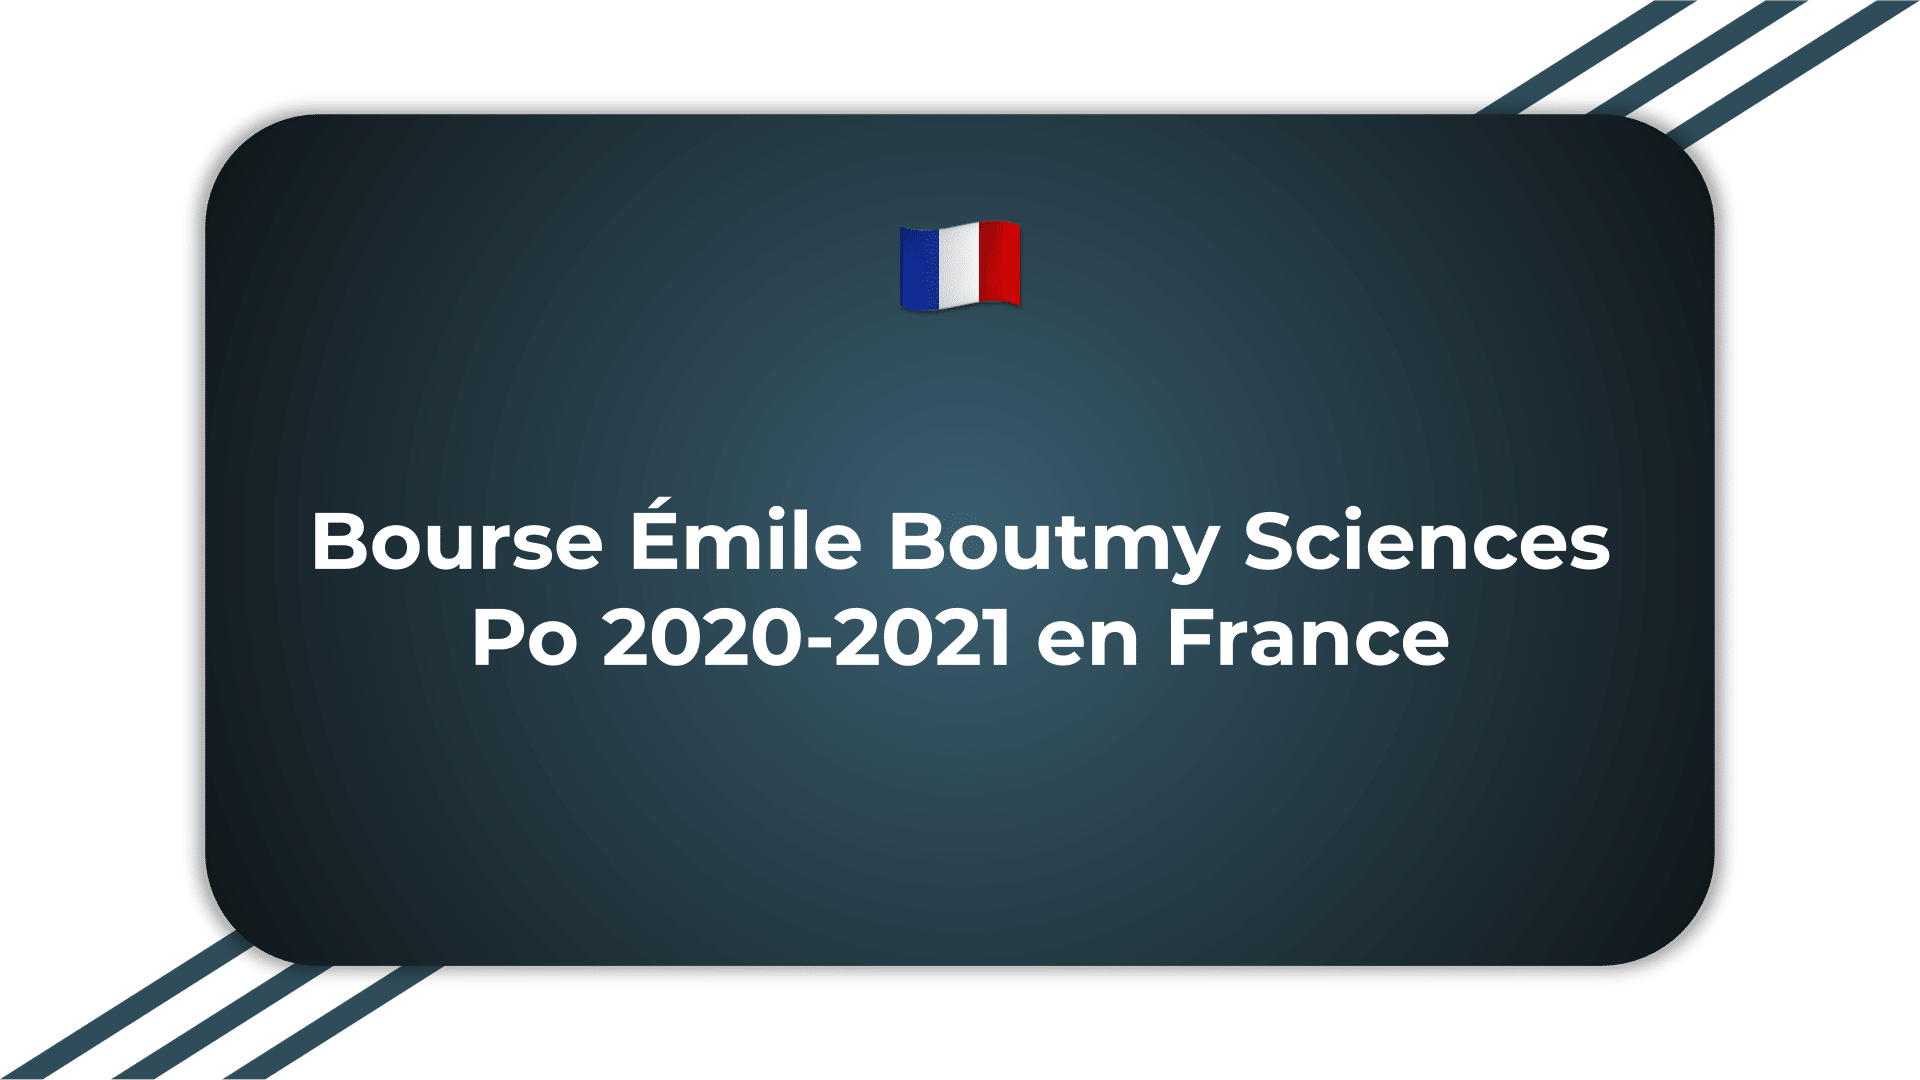 Bourse Émile Boutmy Sciences Po